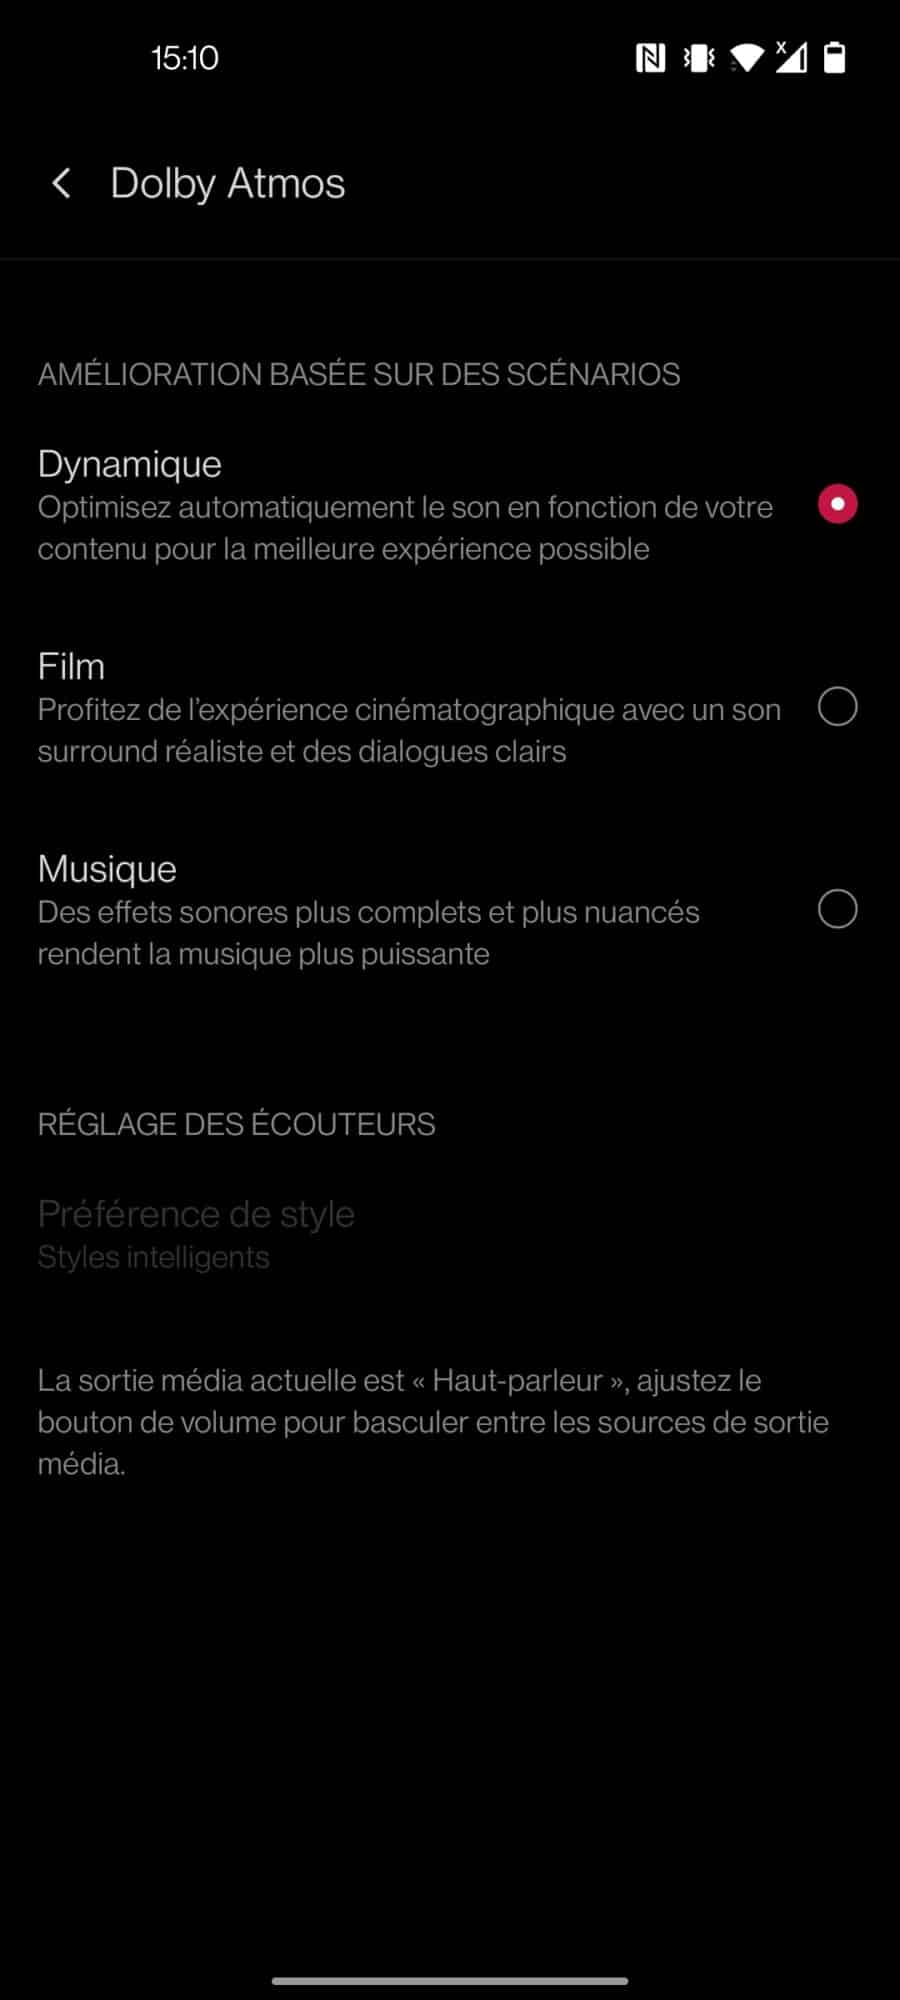 Dolby Atmos OnePlus 8T